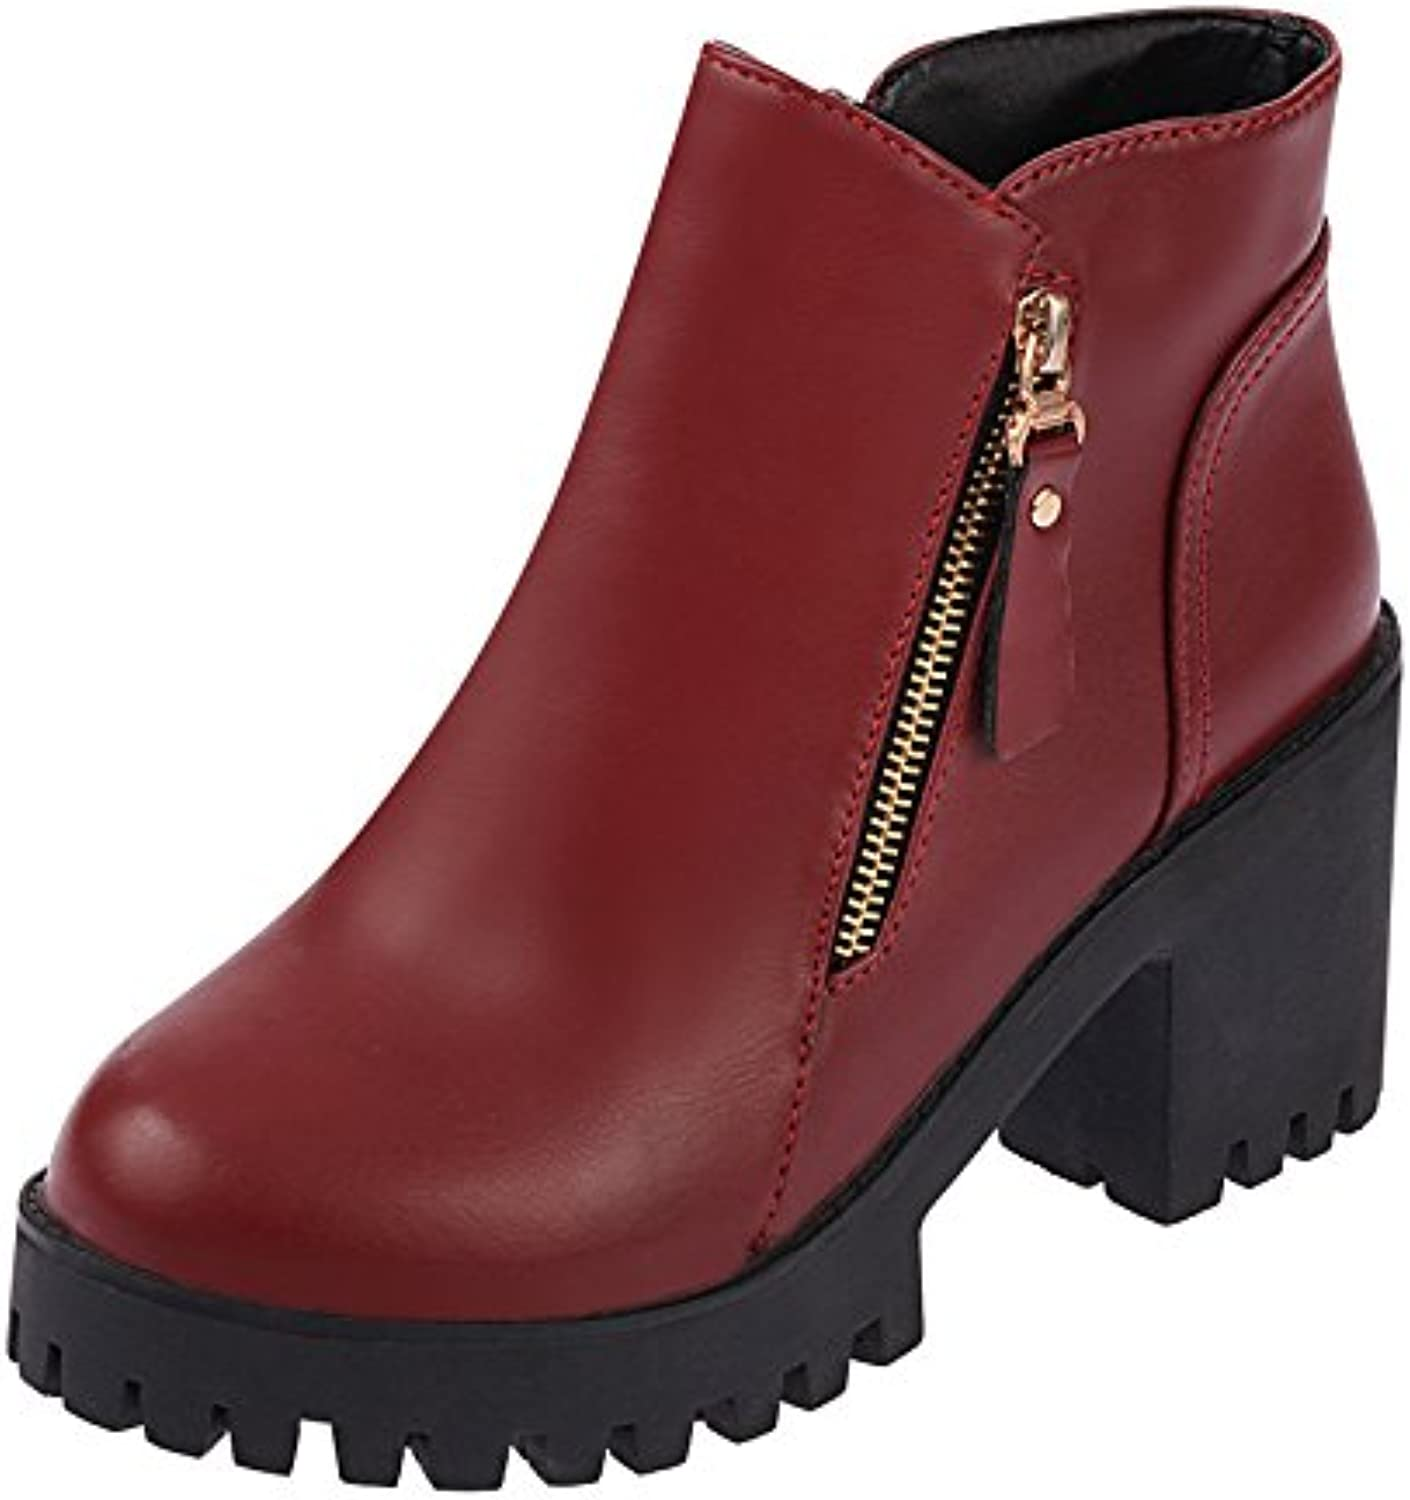 WYMBS Women's shoes Rough with Martin Boots Short Tube Student Short Boots,Wine Red,35